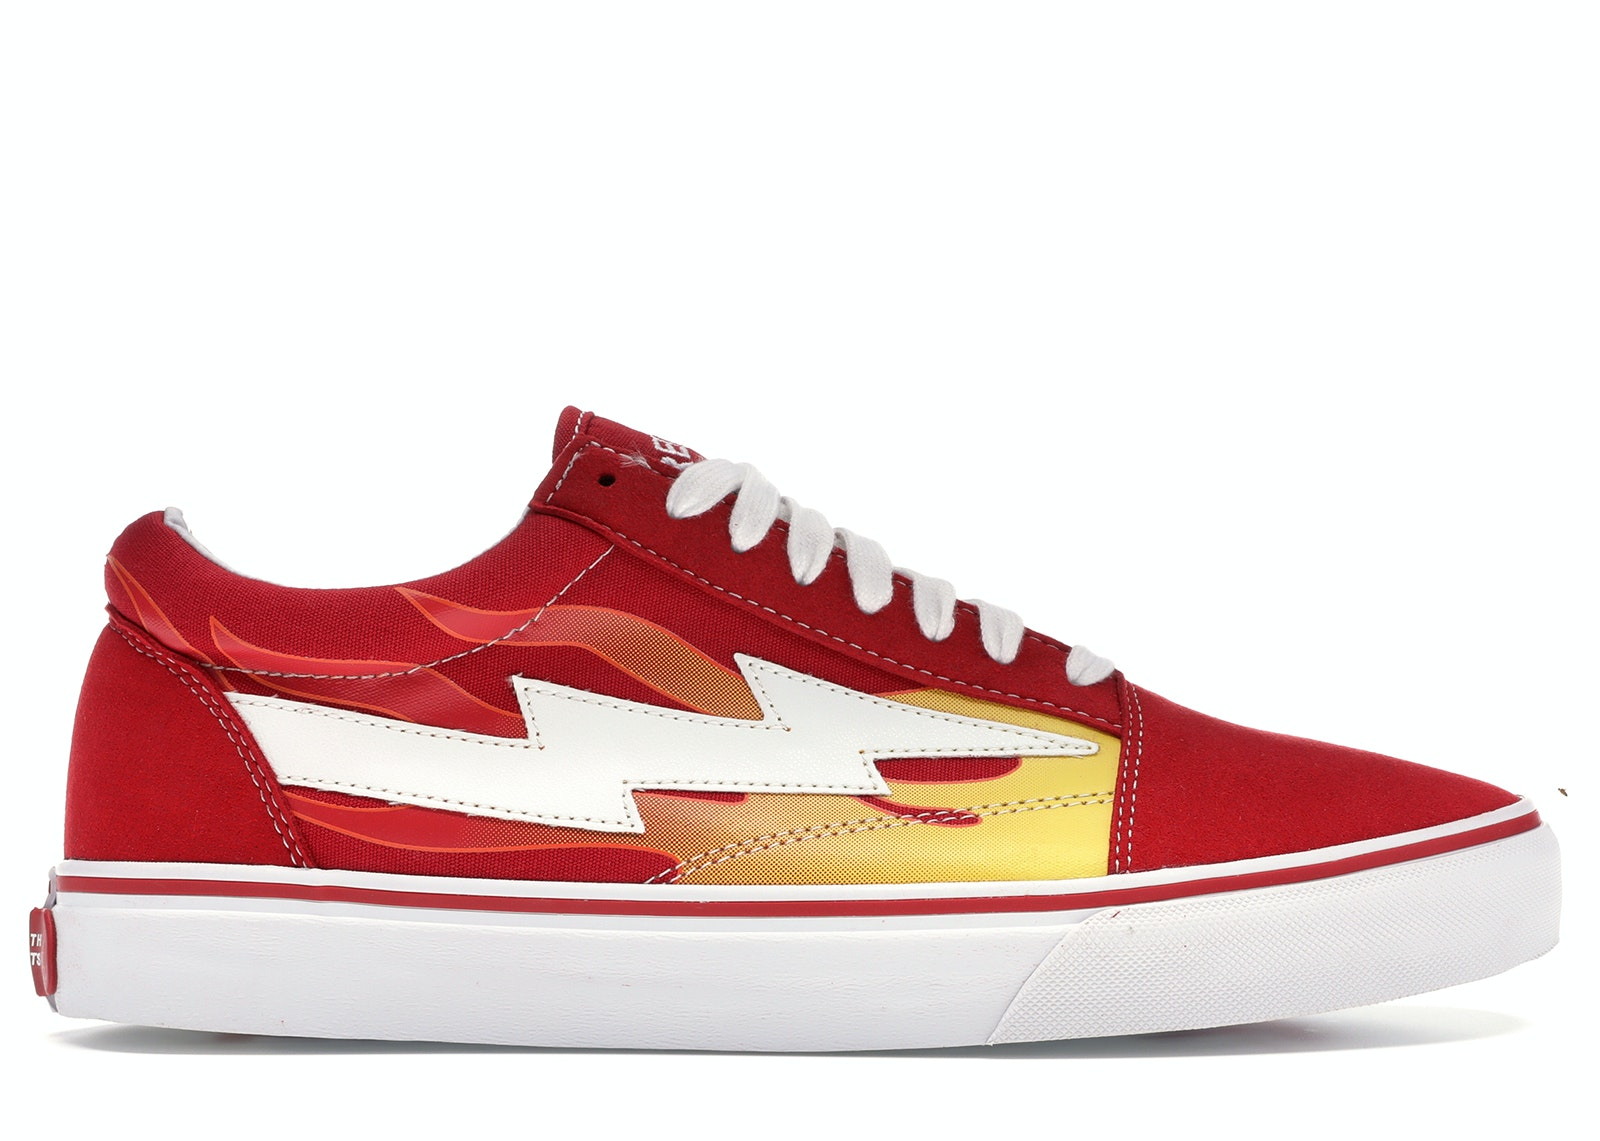 Revenge X Storm Low Top Red (with Flames)